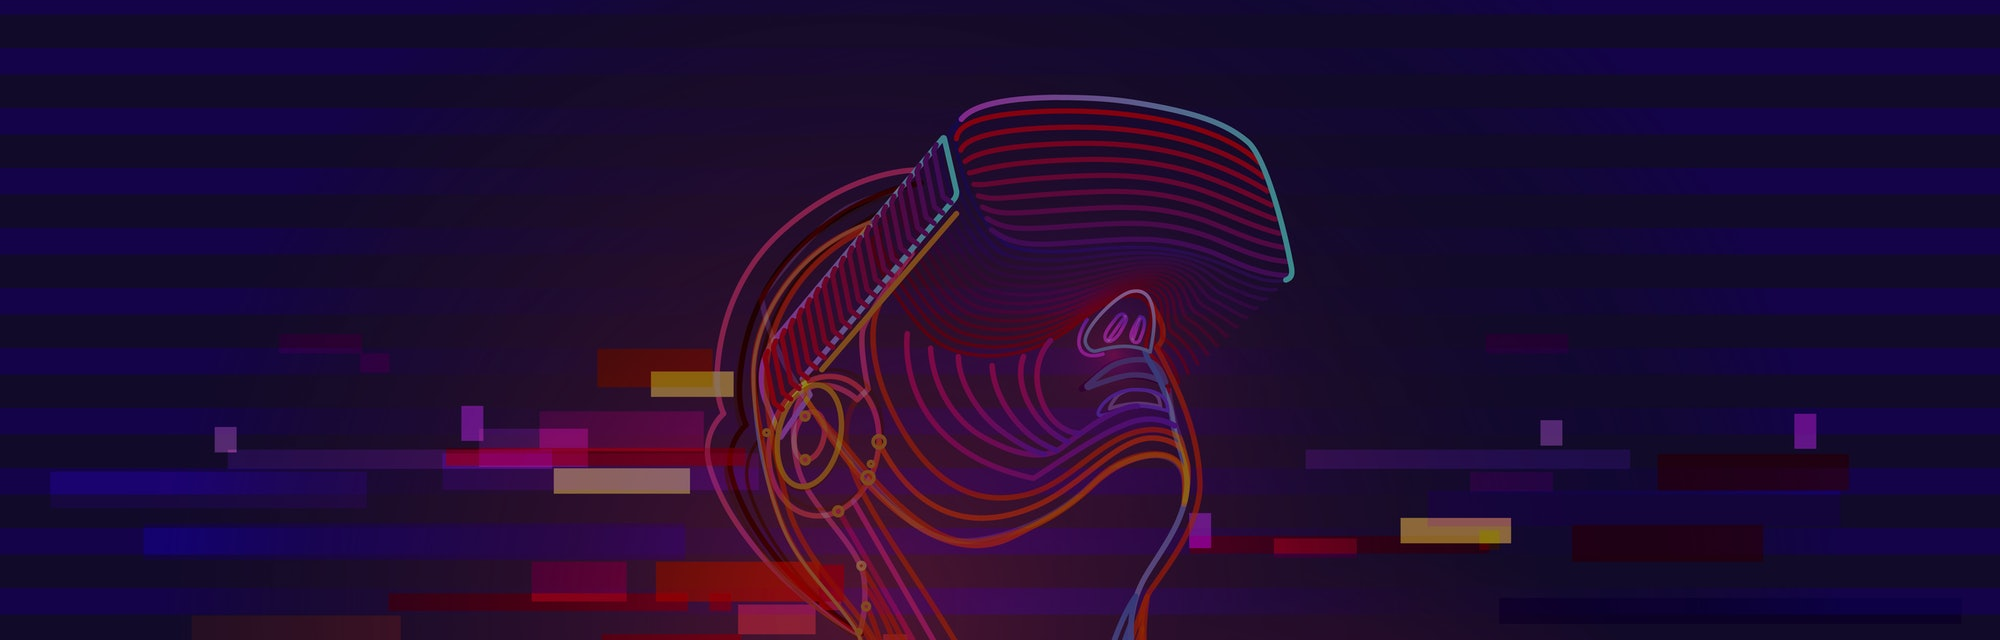 Digital glitch effect in abstract virtual reality. Man wearing vr glasses. Vector illustration